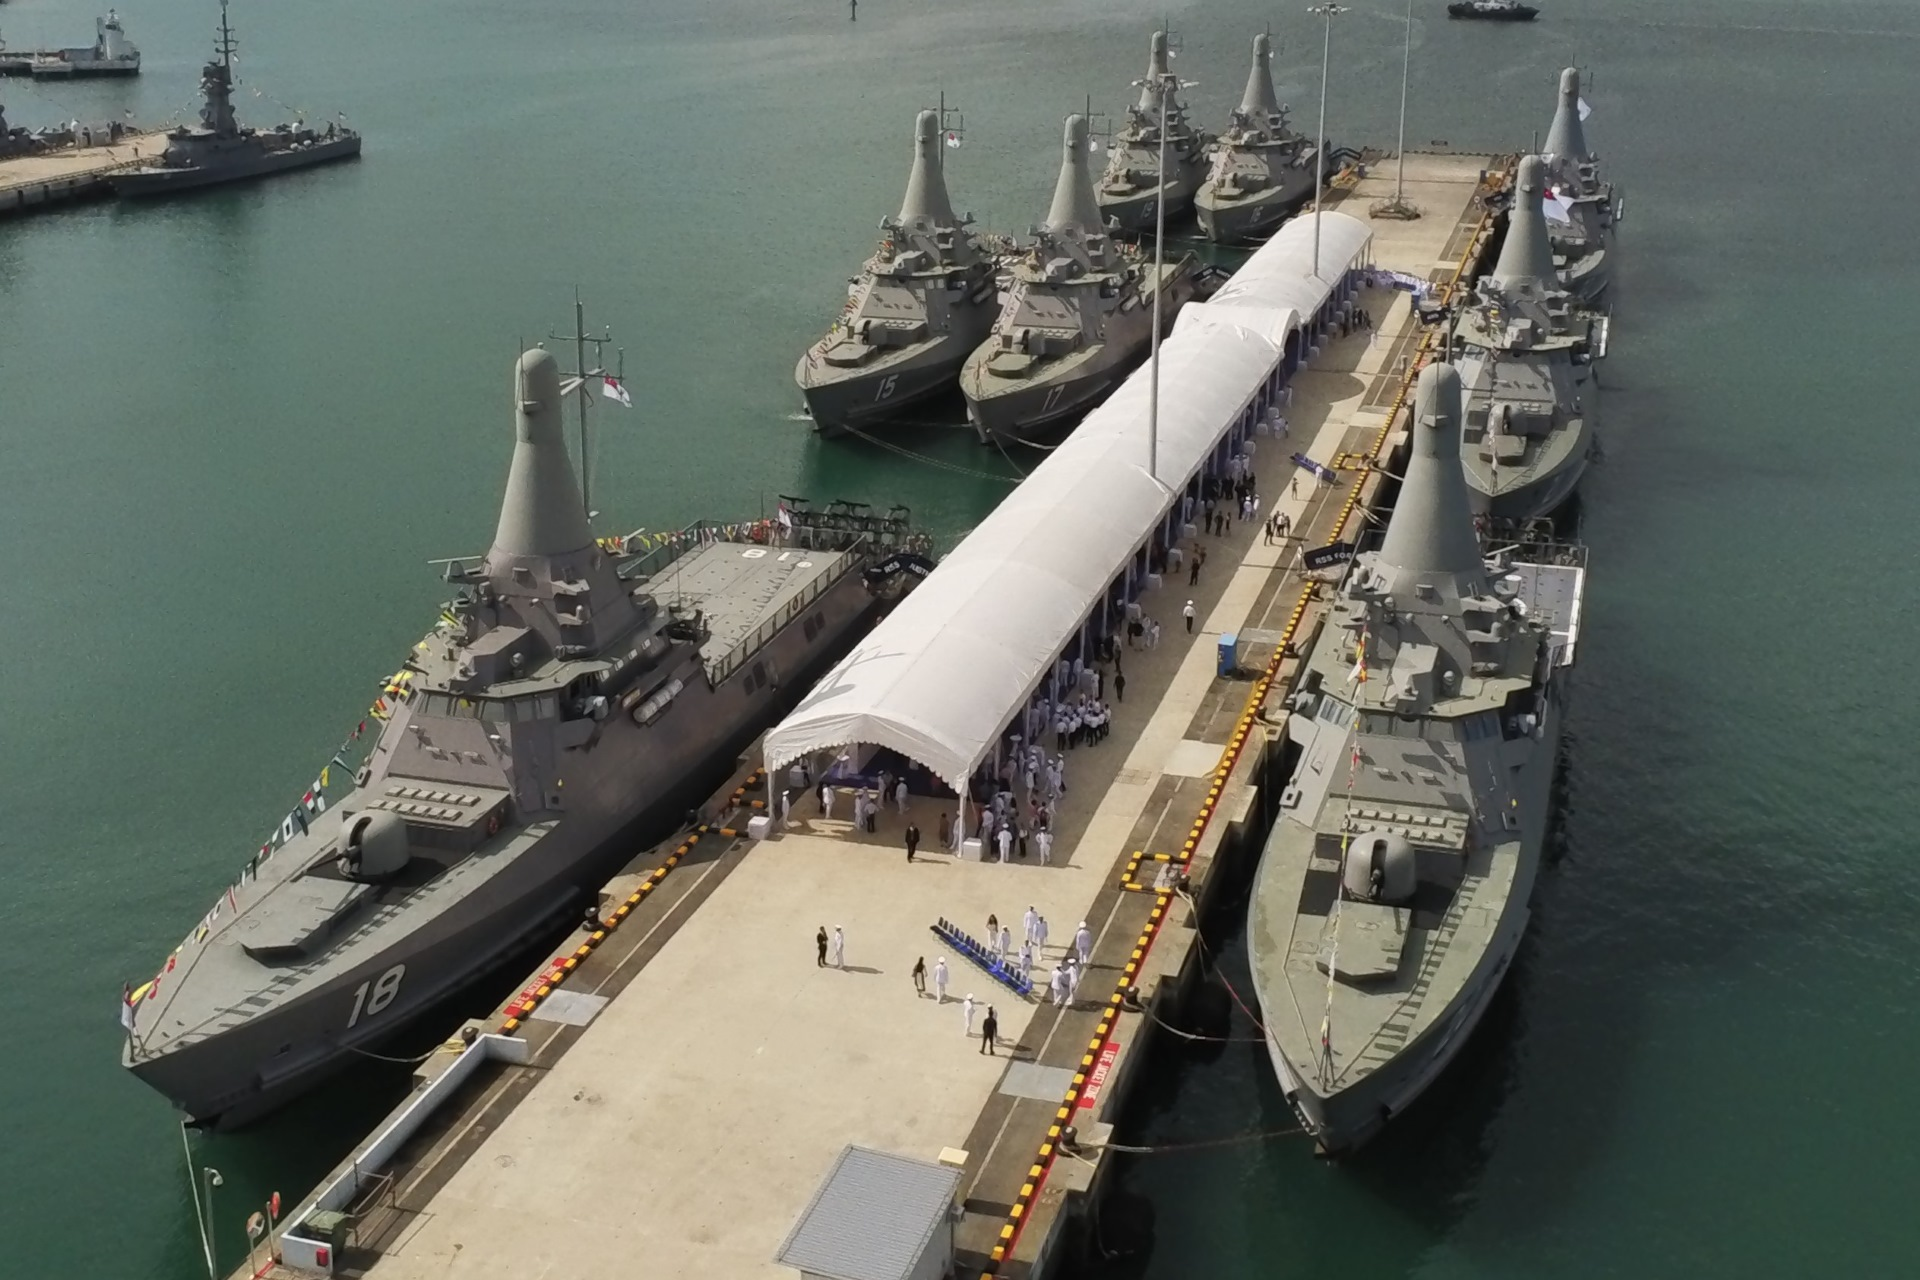 Republic of Singapore Navy Independence-class littoral mission vessels at Tuas Naval Base.